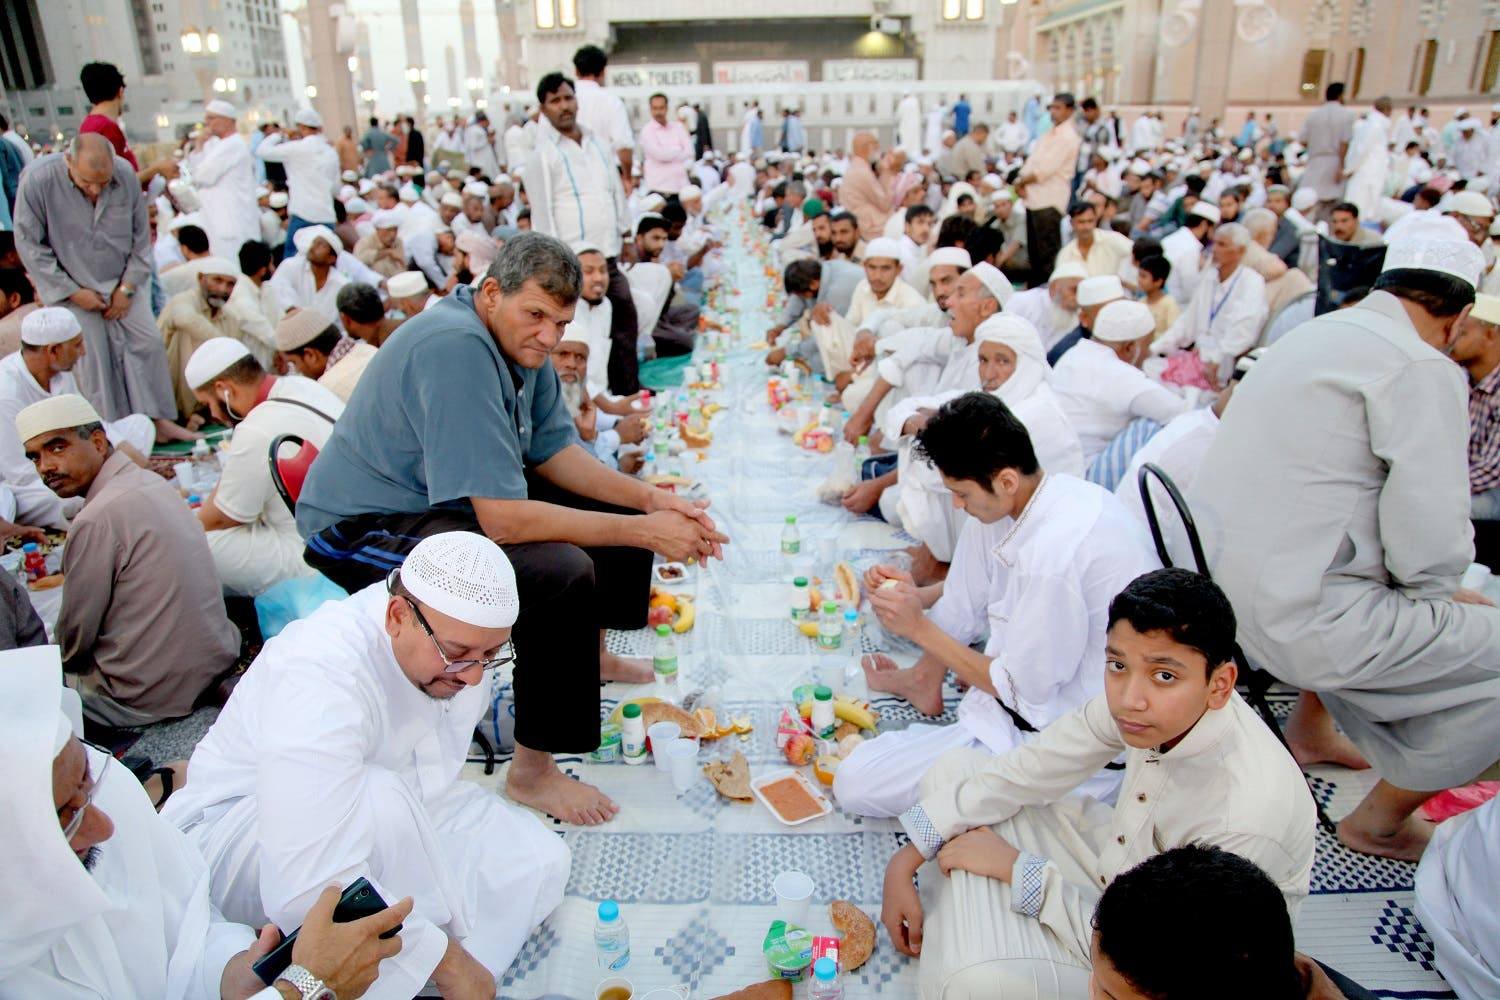 Worshippers break the fast at the Prophet Mohammed Mosque in Medina during Ramadan on June 10, 2016. (AFP)